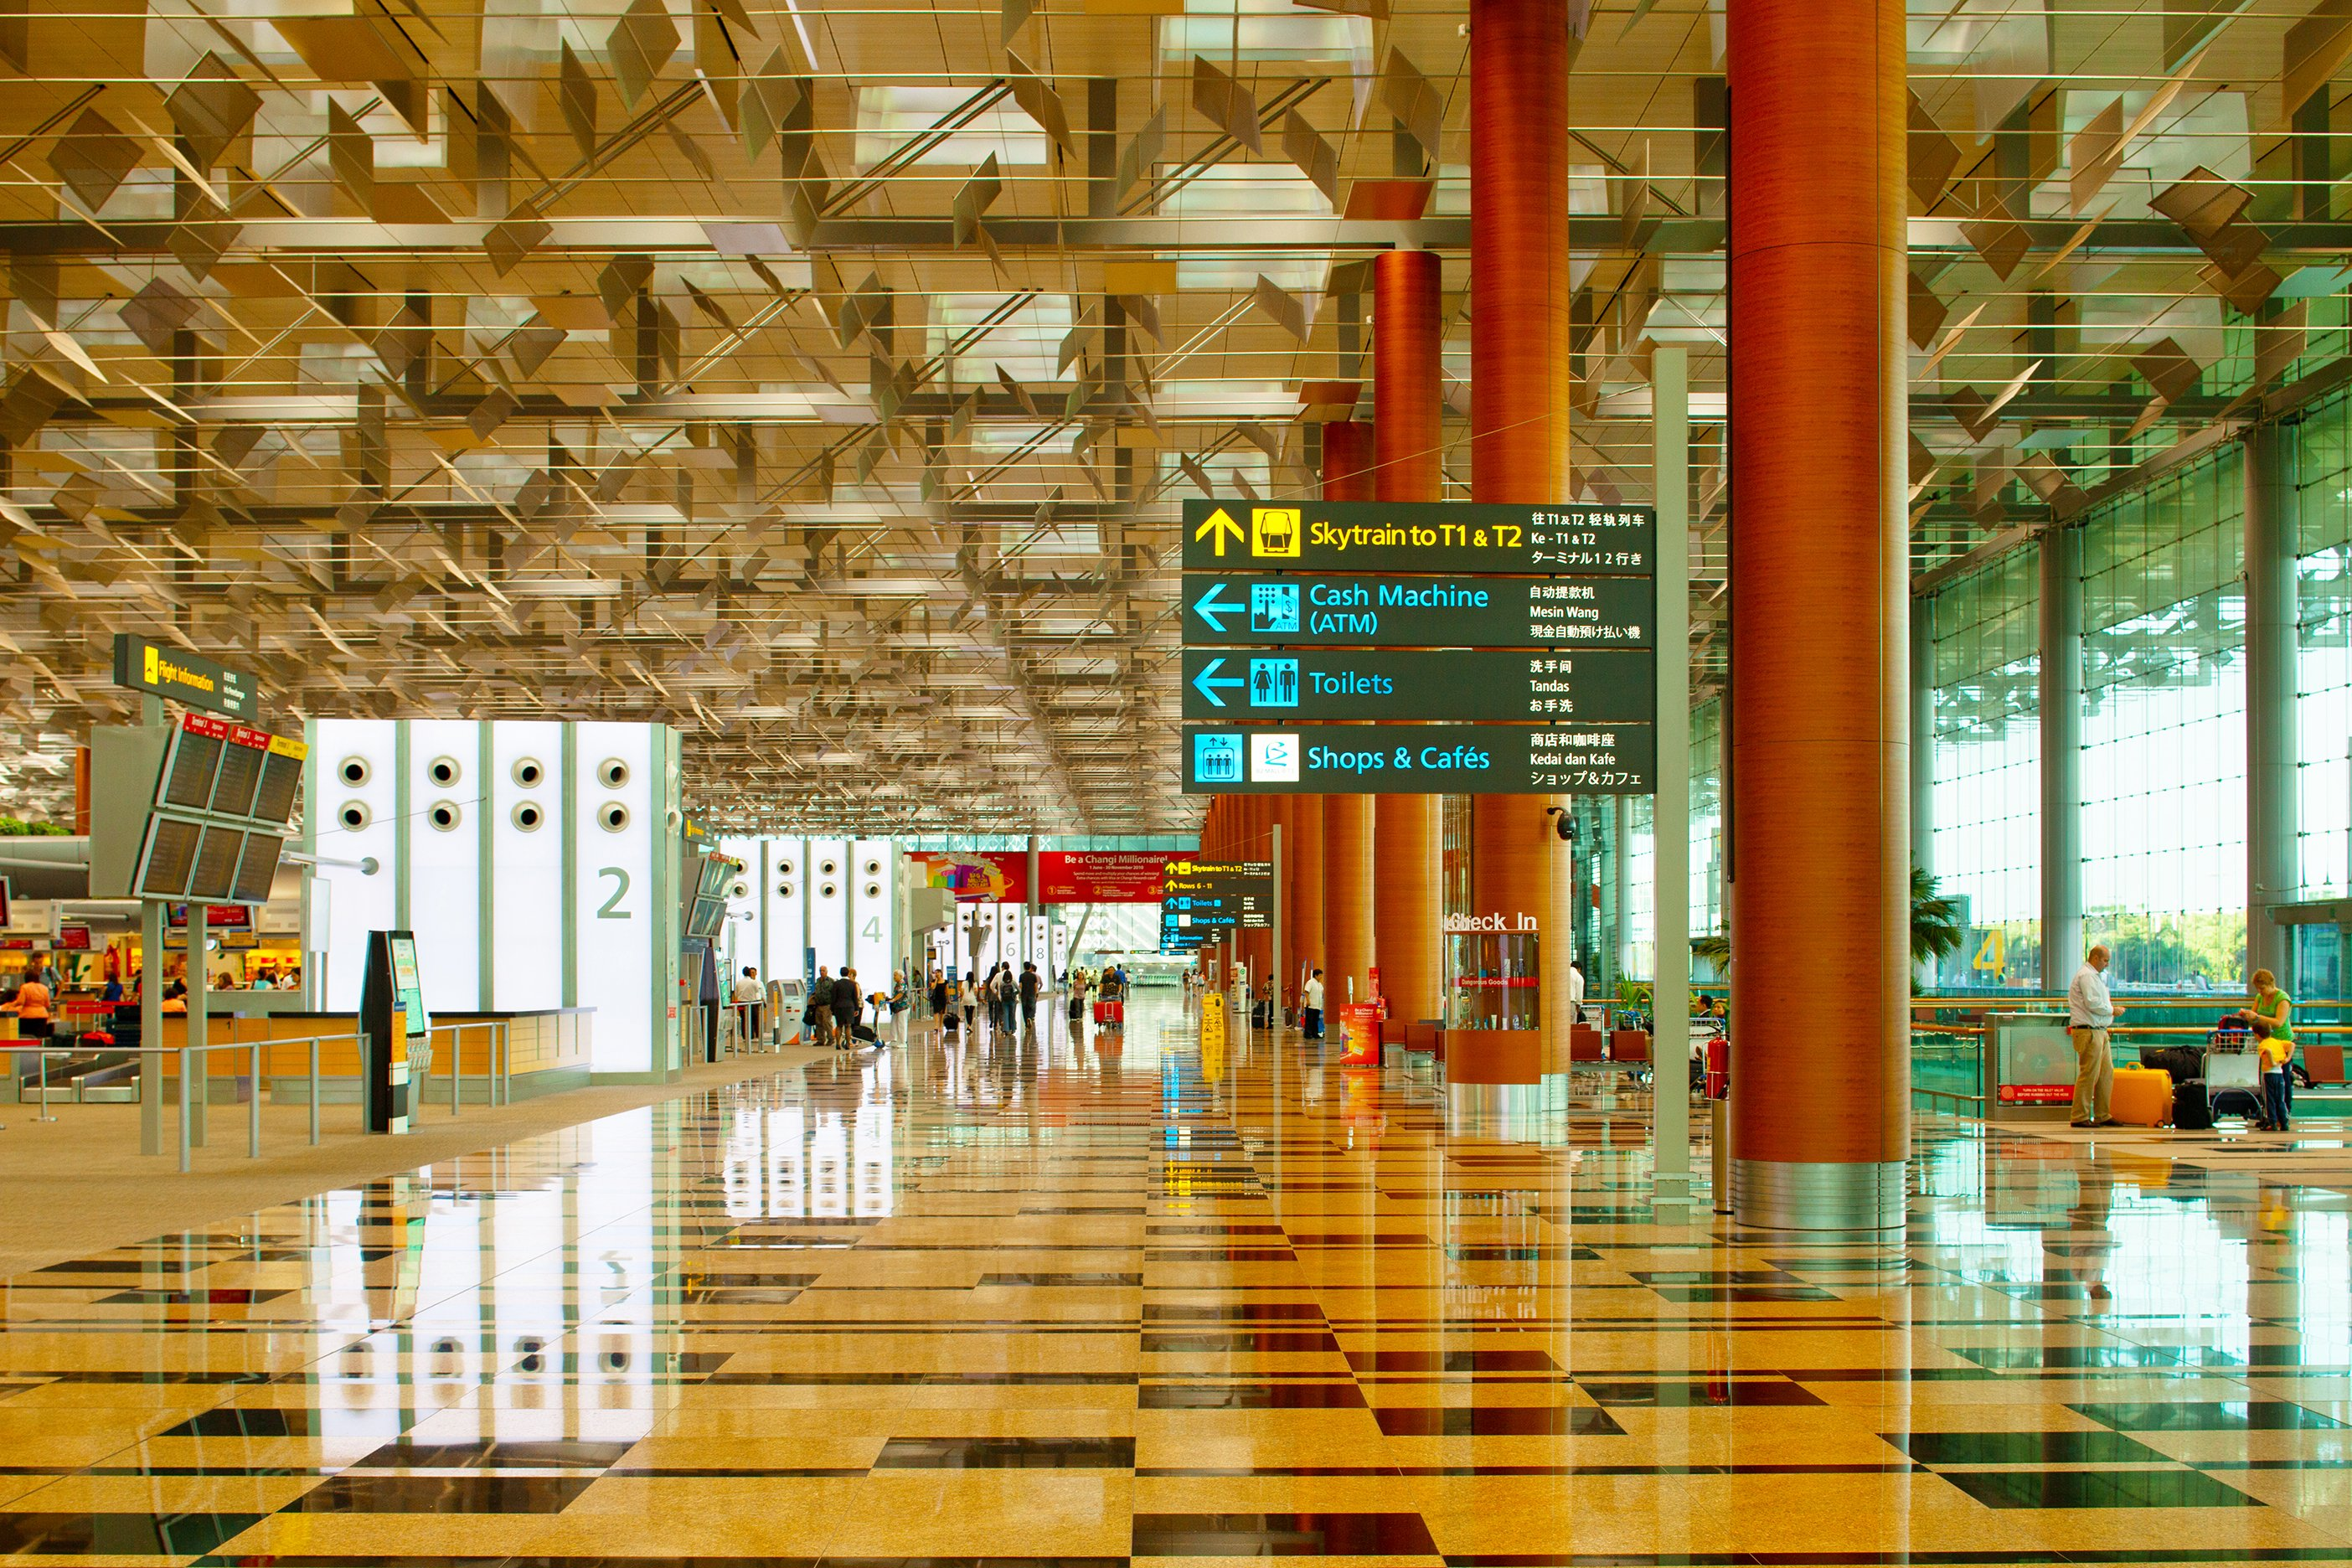 Inbound foreign travellers can now purchase travel insurance coverage for COVID-19 related costs incurred in Singapore. Photo courtesy: STB